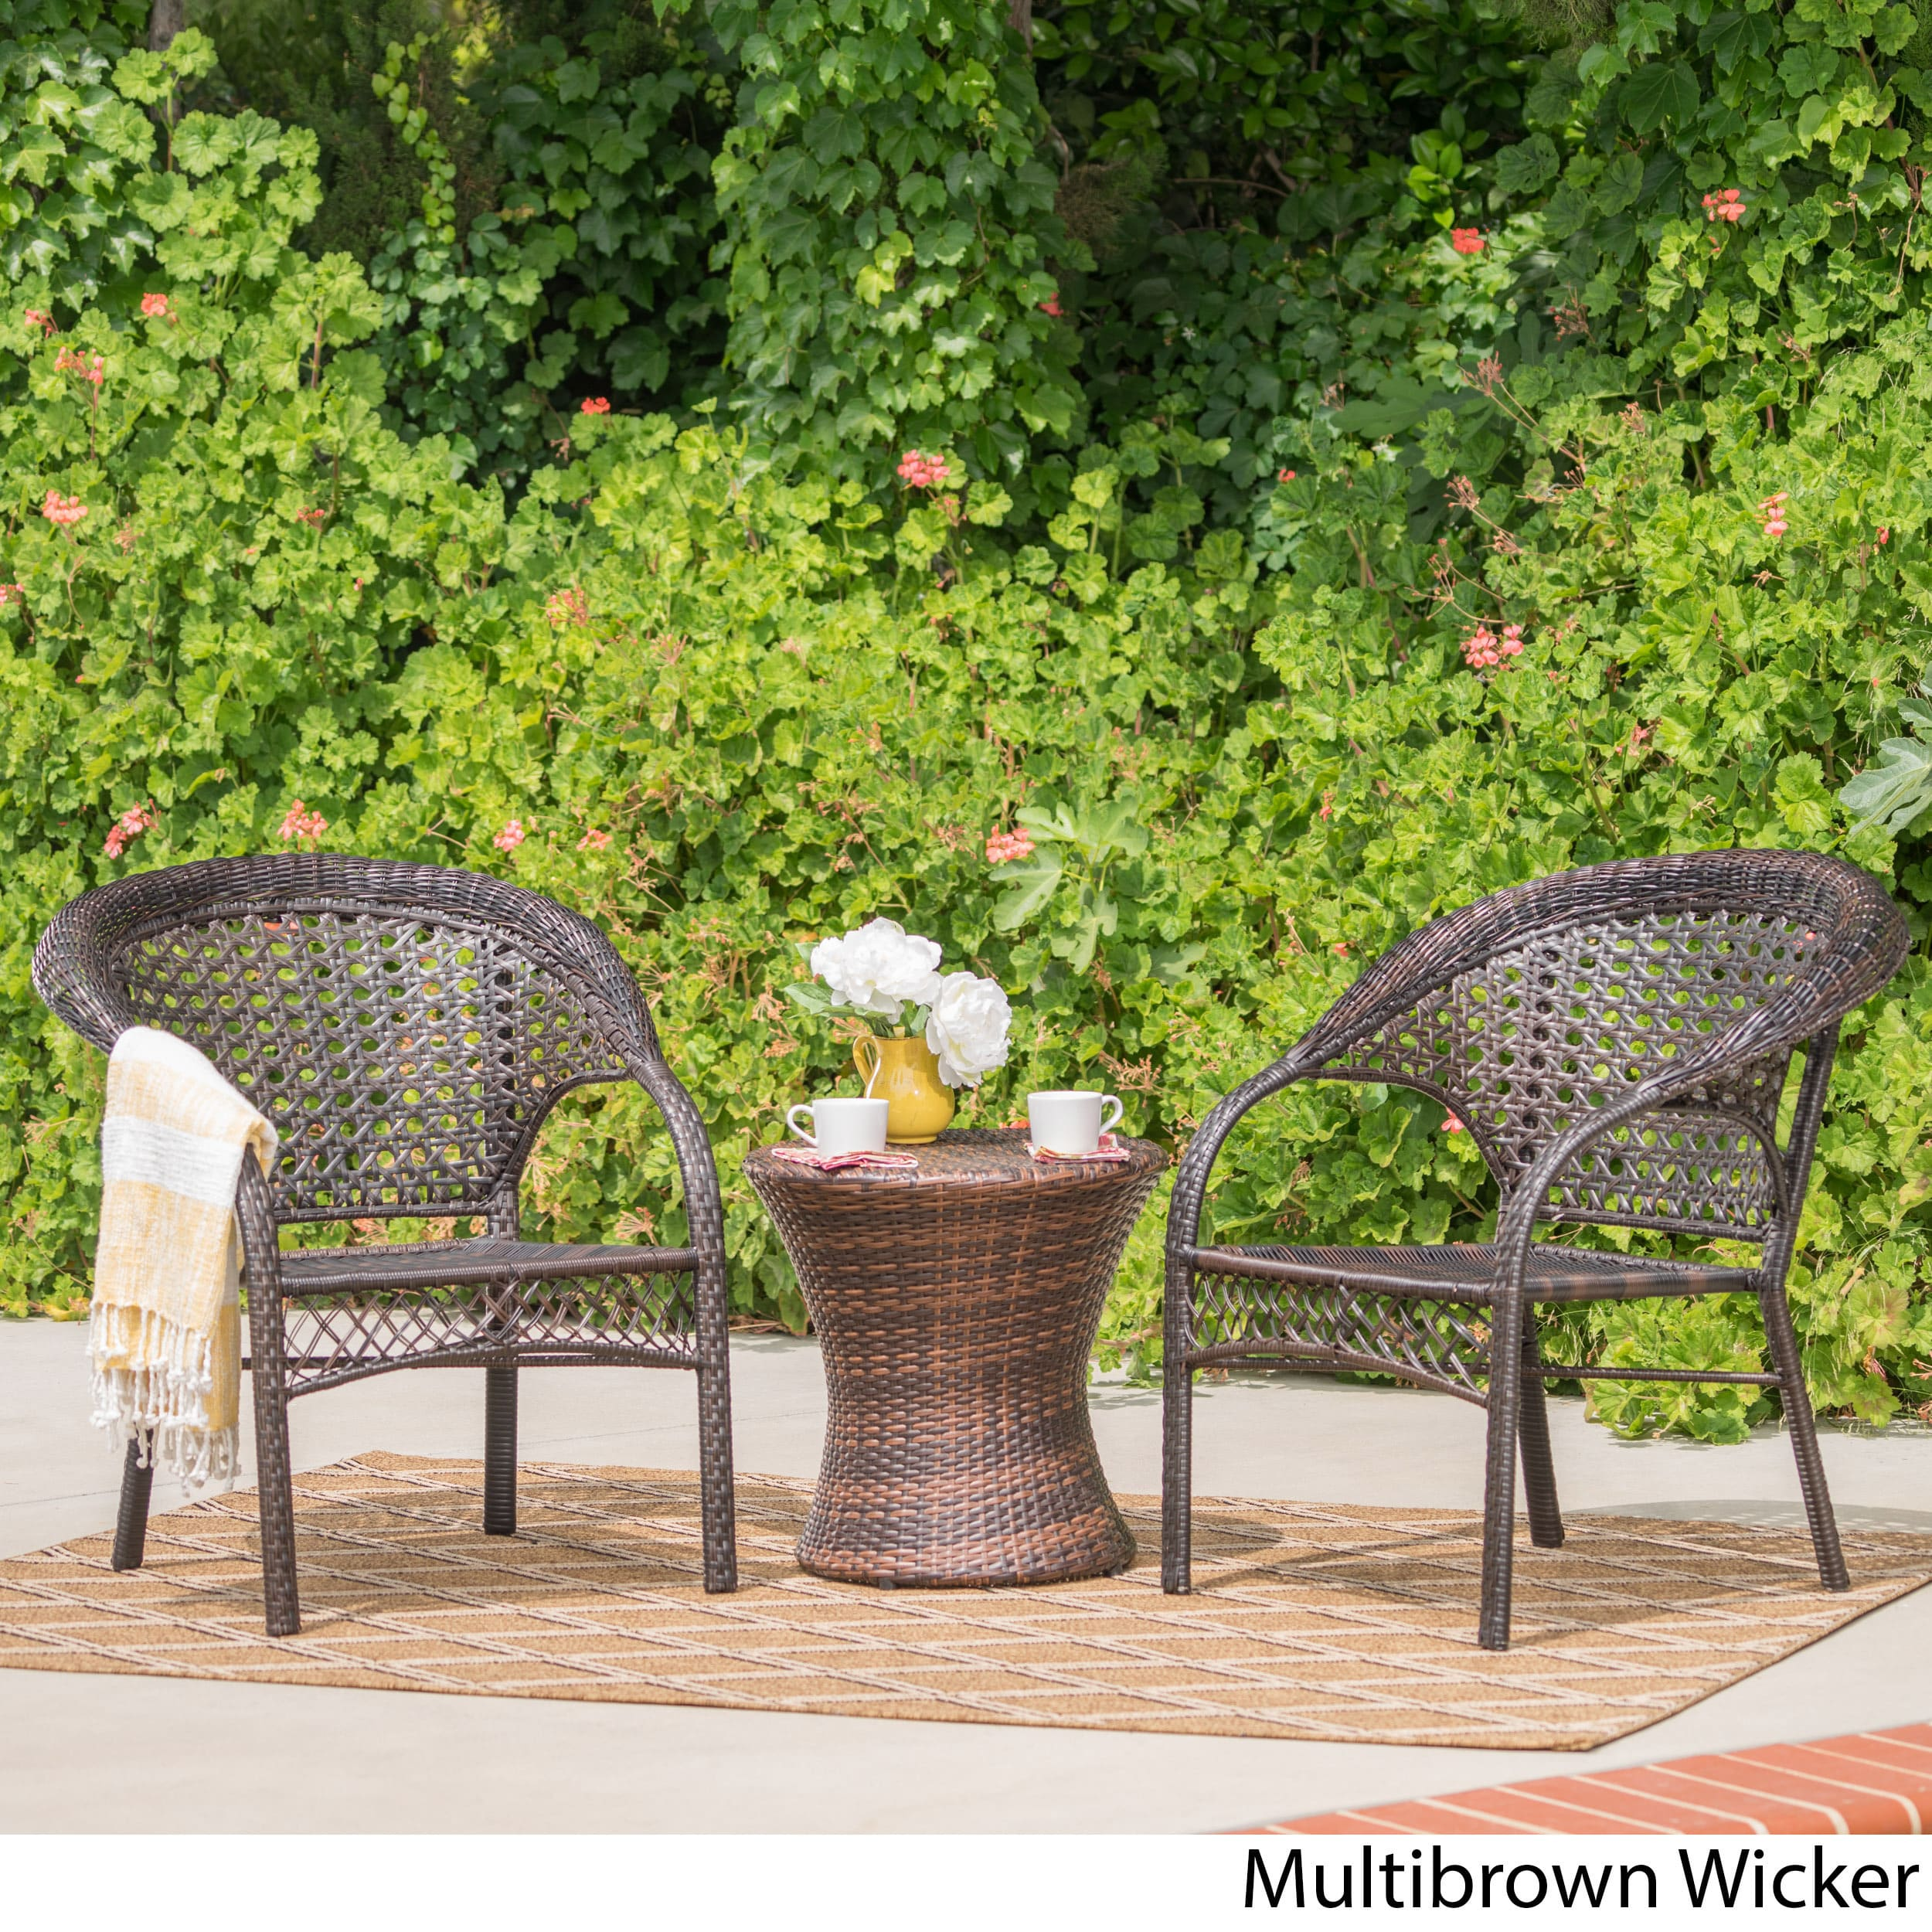 Super Monroe Wicker 3 Piece Outdoor Stacking Chair Chat Set Gmtry Best Dining Table And Chair Ideas Images Gmtryco